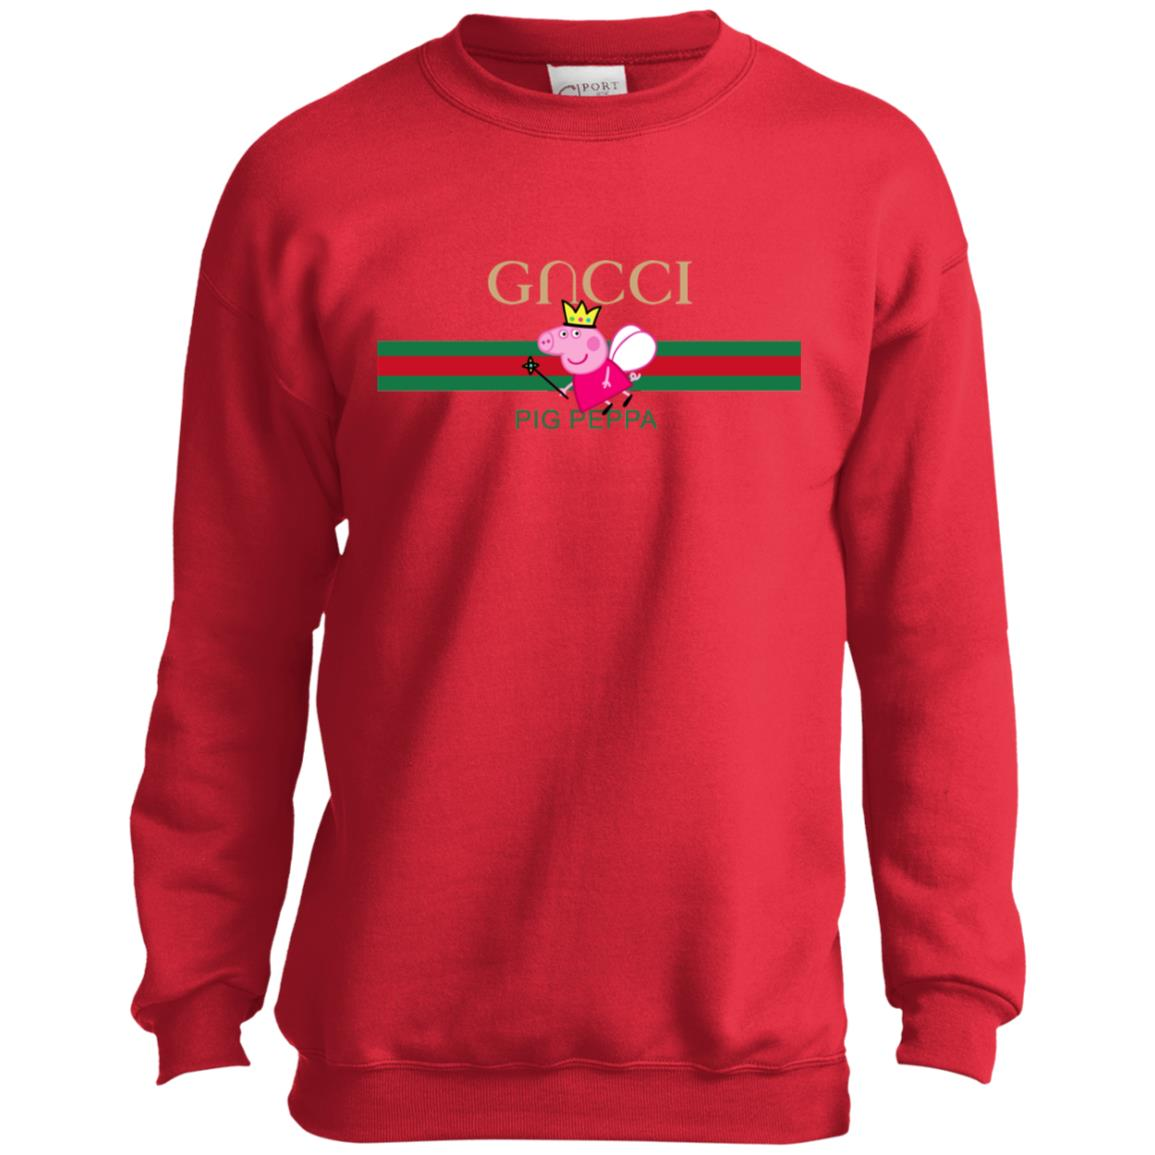 Peppa Pig Gucci Shirt PC90Y Port and Co. Youth Crewneck Sweatshirt